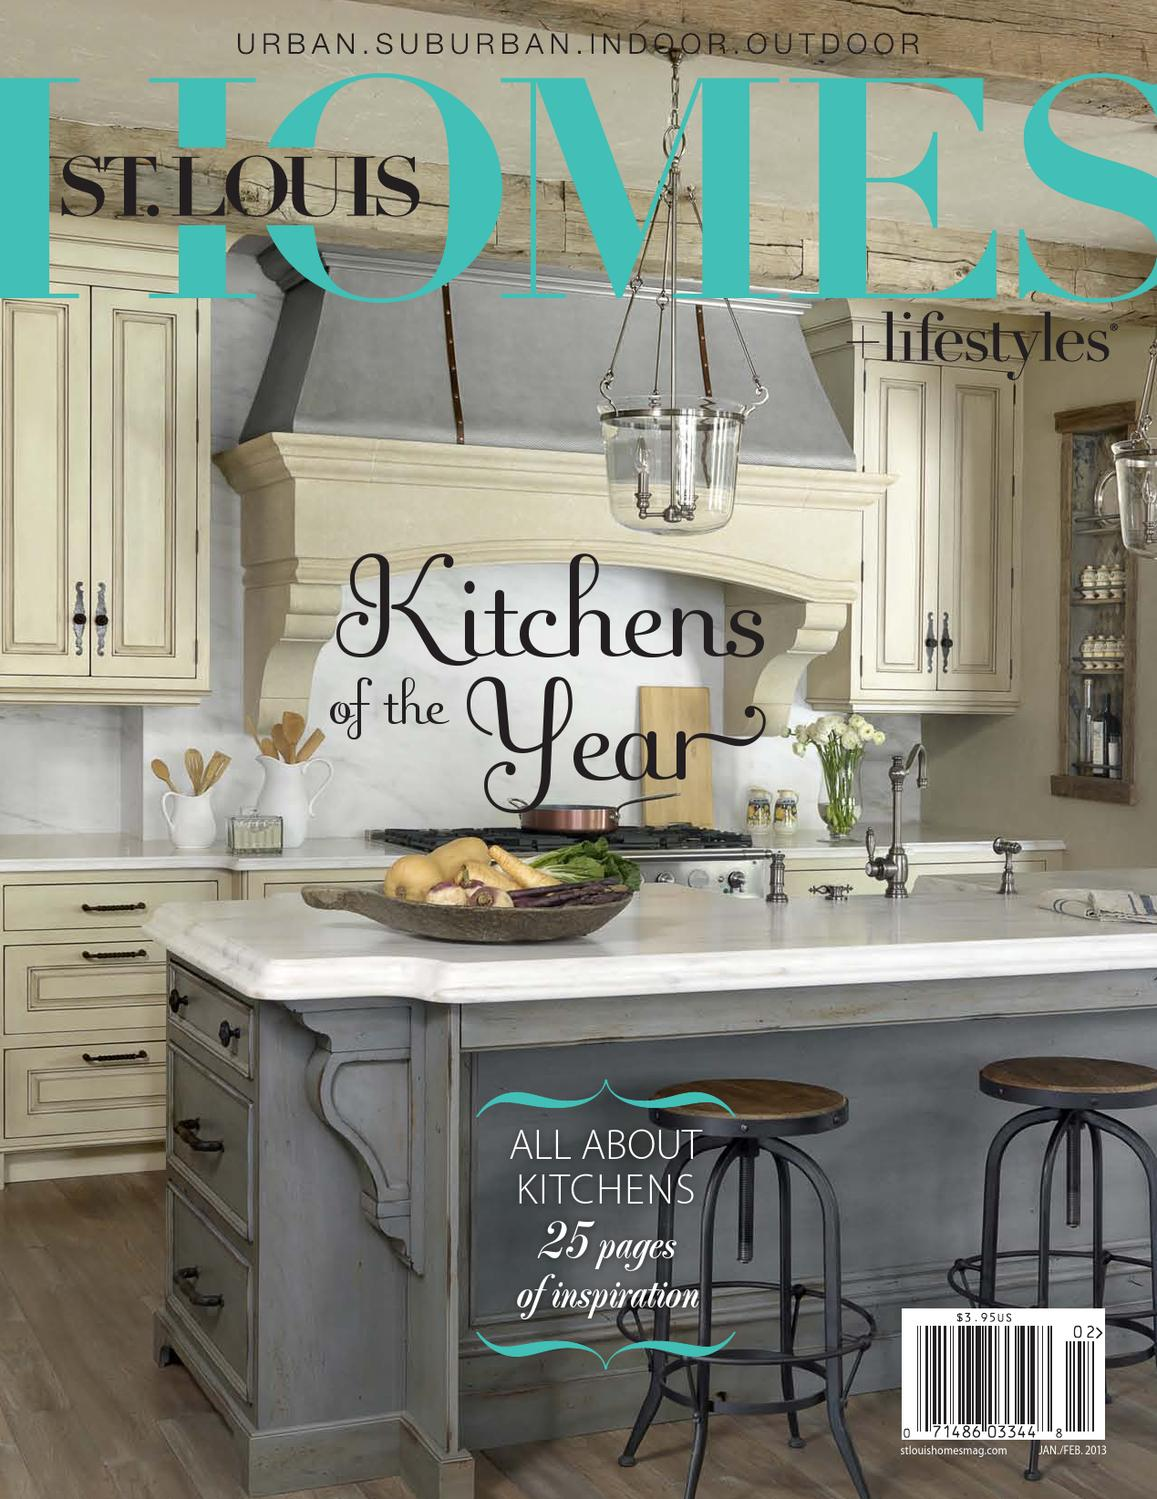 January February 2013 By St Louis Homes Lifestyles